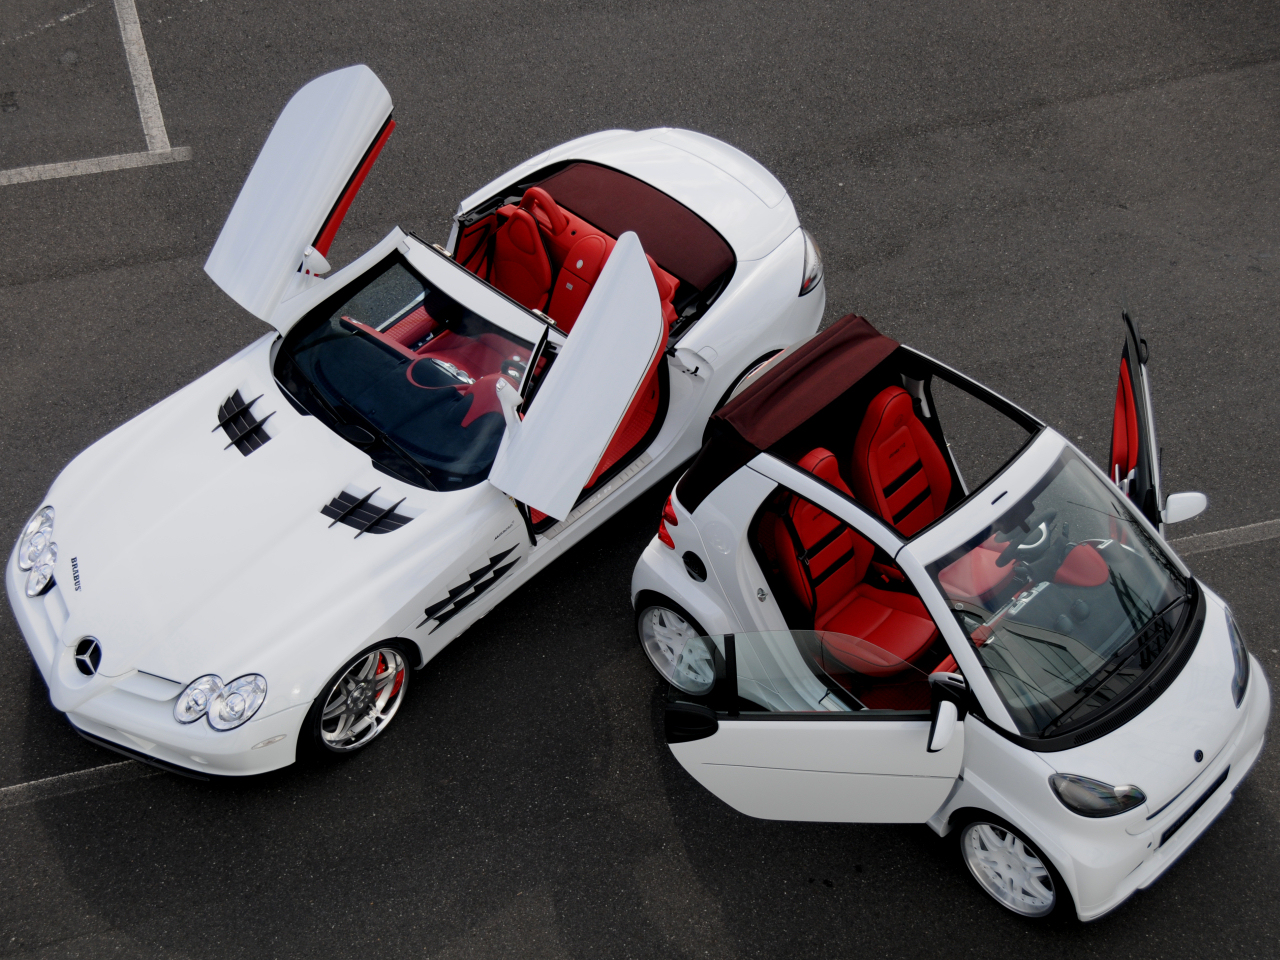 wallpaper 1024x960:Brabus SLR and smart fortwo